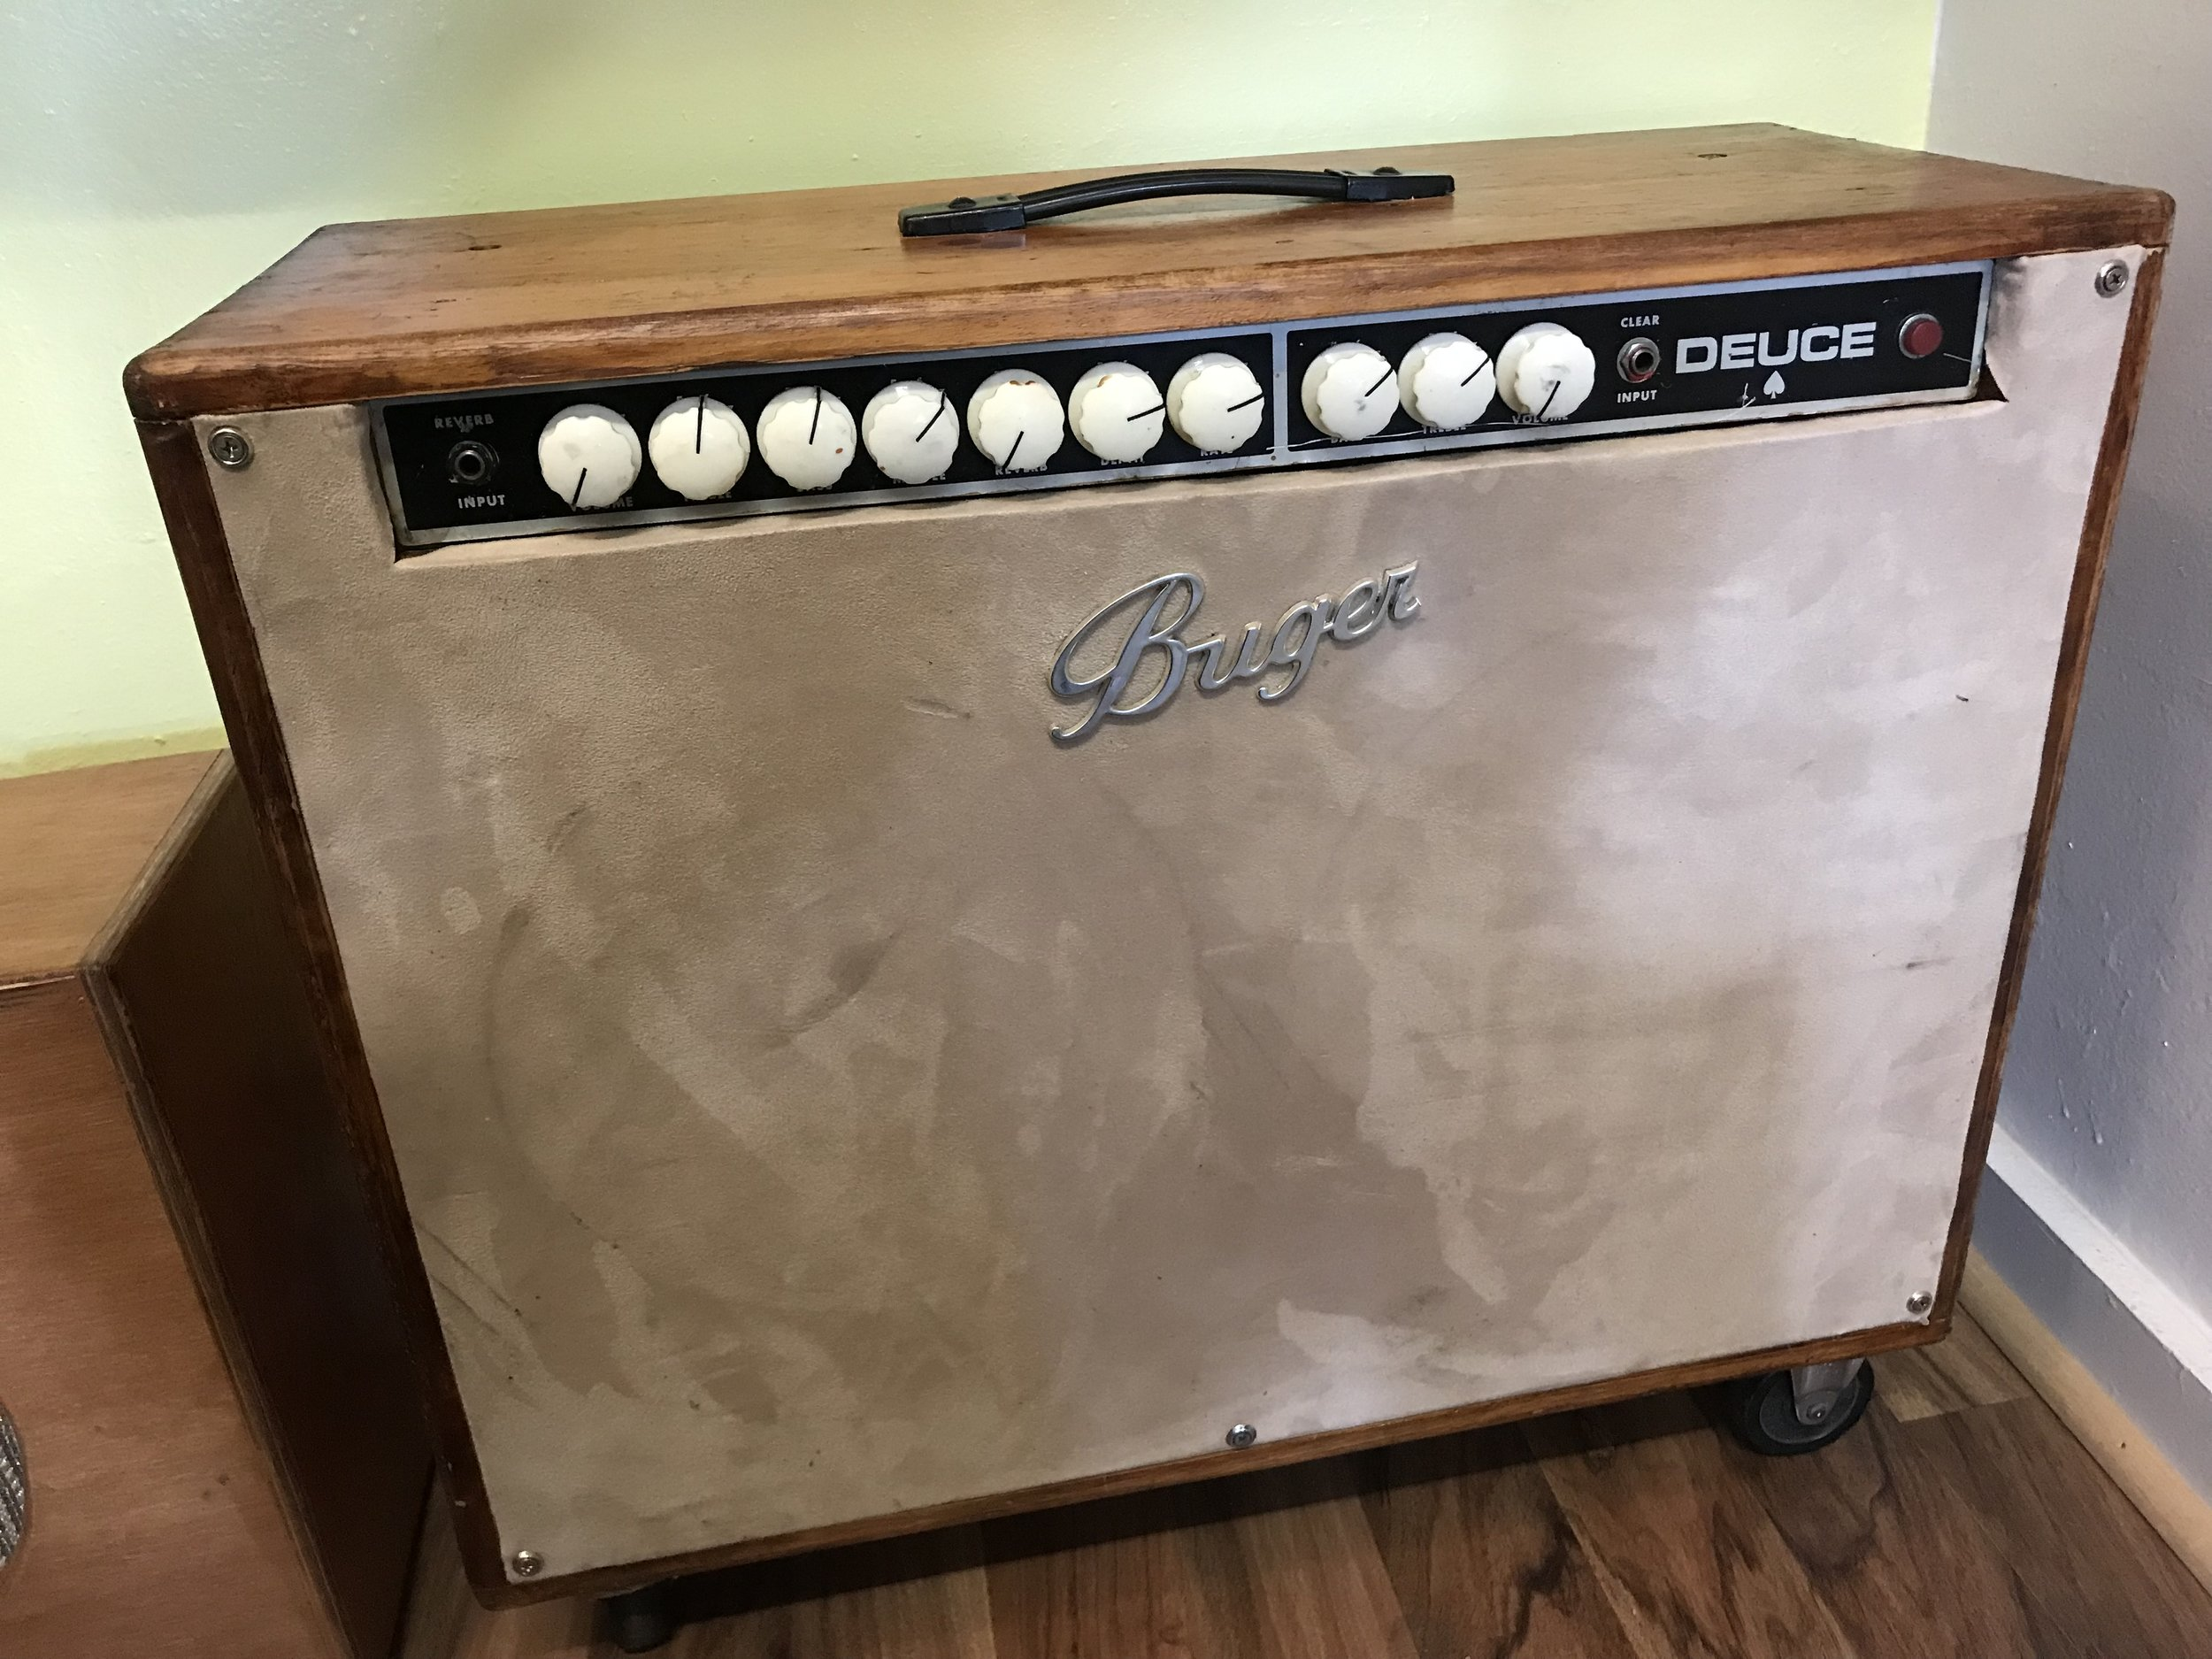 Peavy Deuce Solid State - An amazing amplifier with huge tone!! Rebuilt by Tim Mason from OAK AMPS.2 channels, 1 clean and a great platform for effects the other a reverb powerhouse.Come in and give it a try. You'll love it.$699